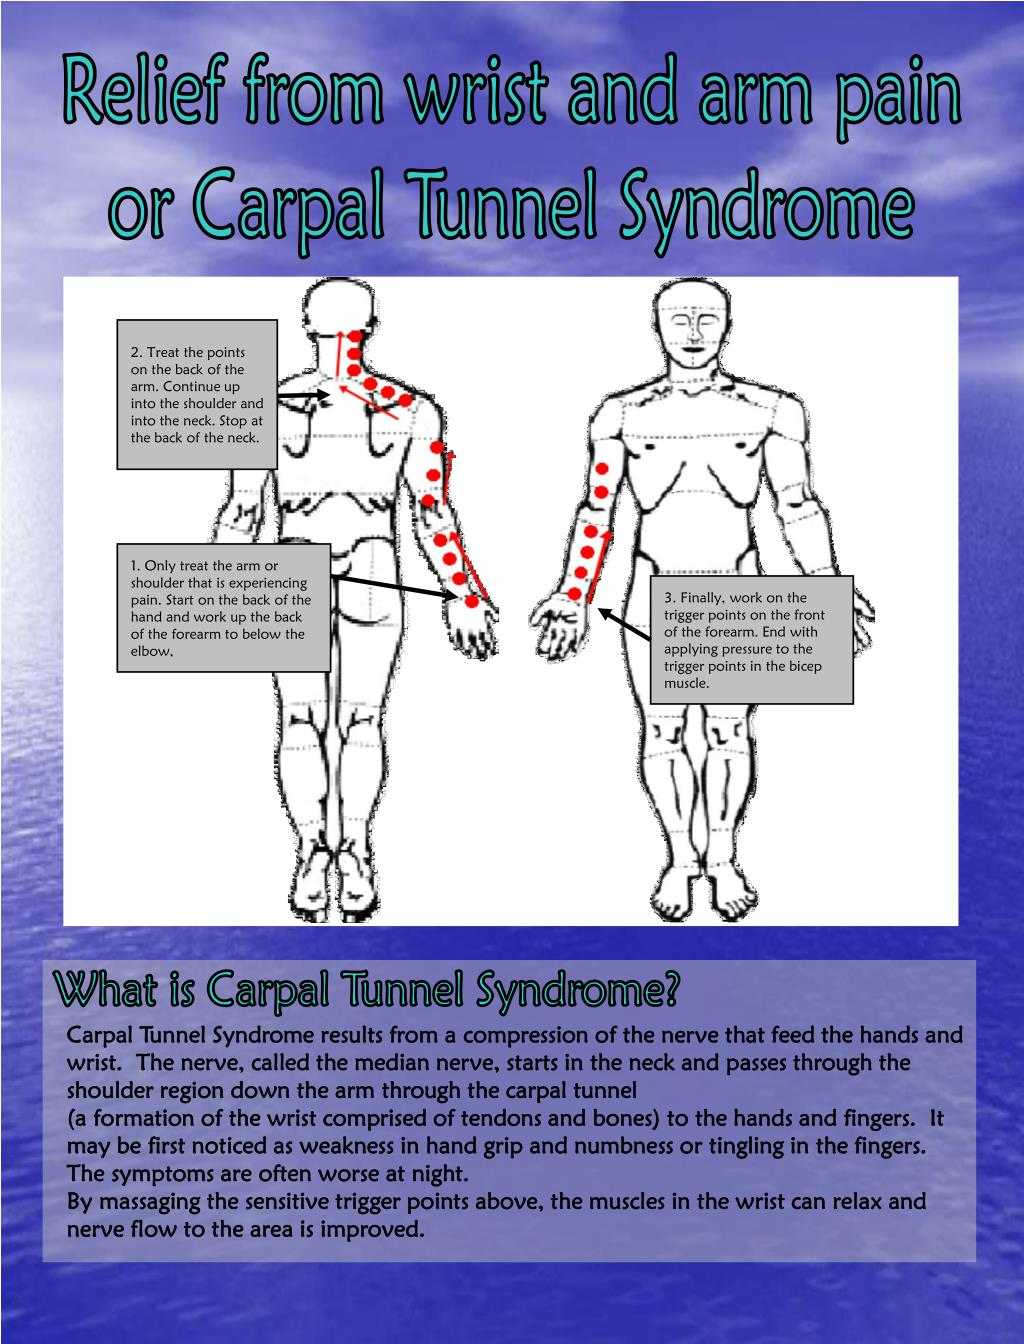 Relief from wrist and arm pain